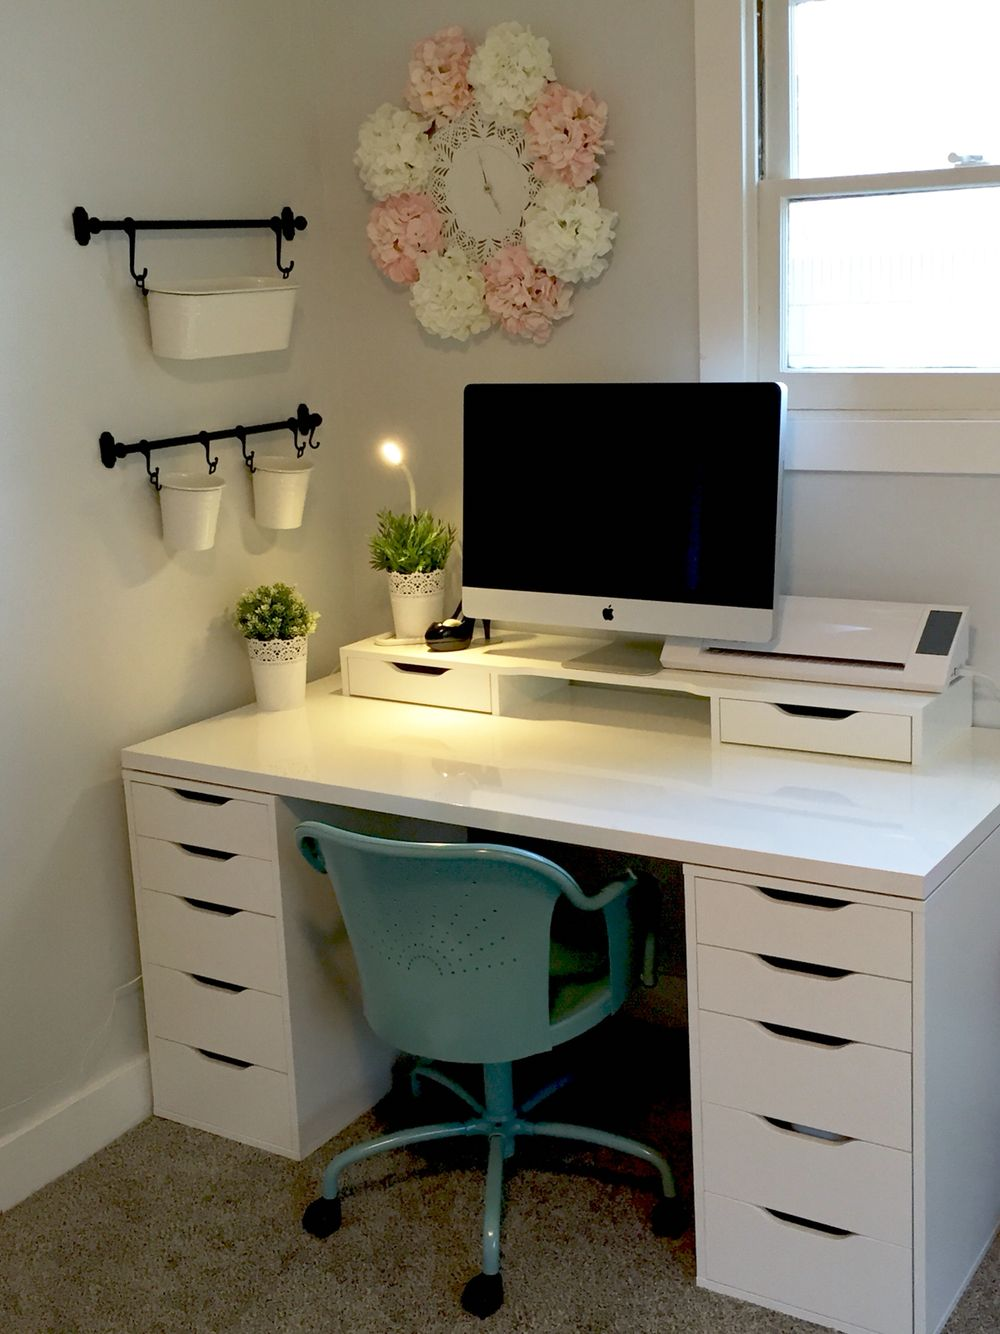 The 25 best ikea alex desk ideas on pinterest desks ikea white desks and alex desk - Desk for small spaces ikea ...